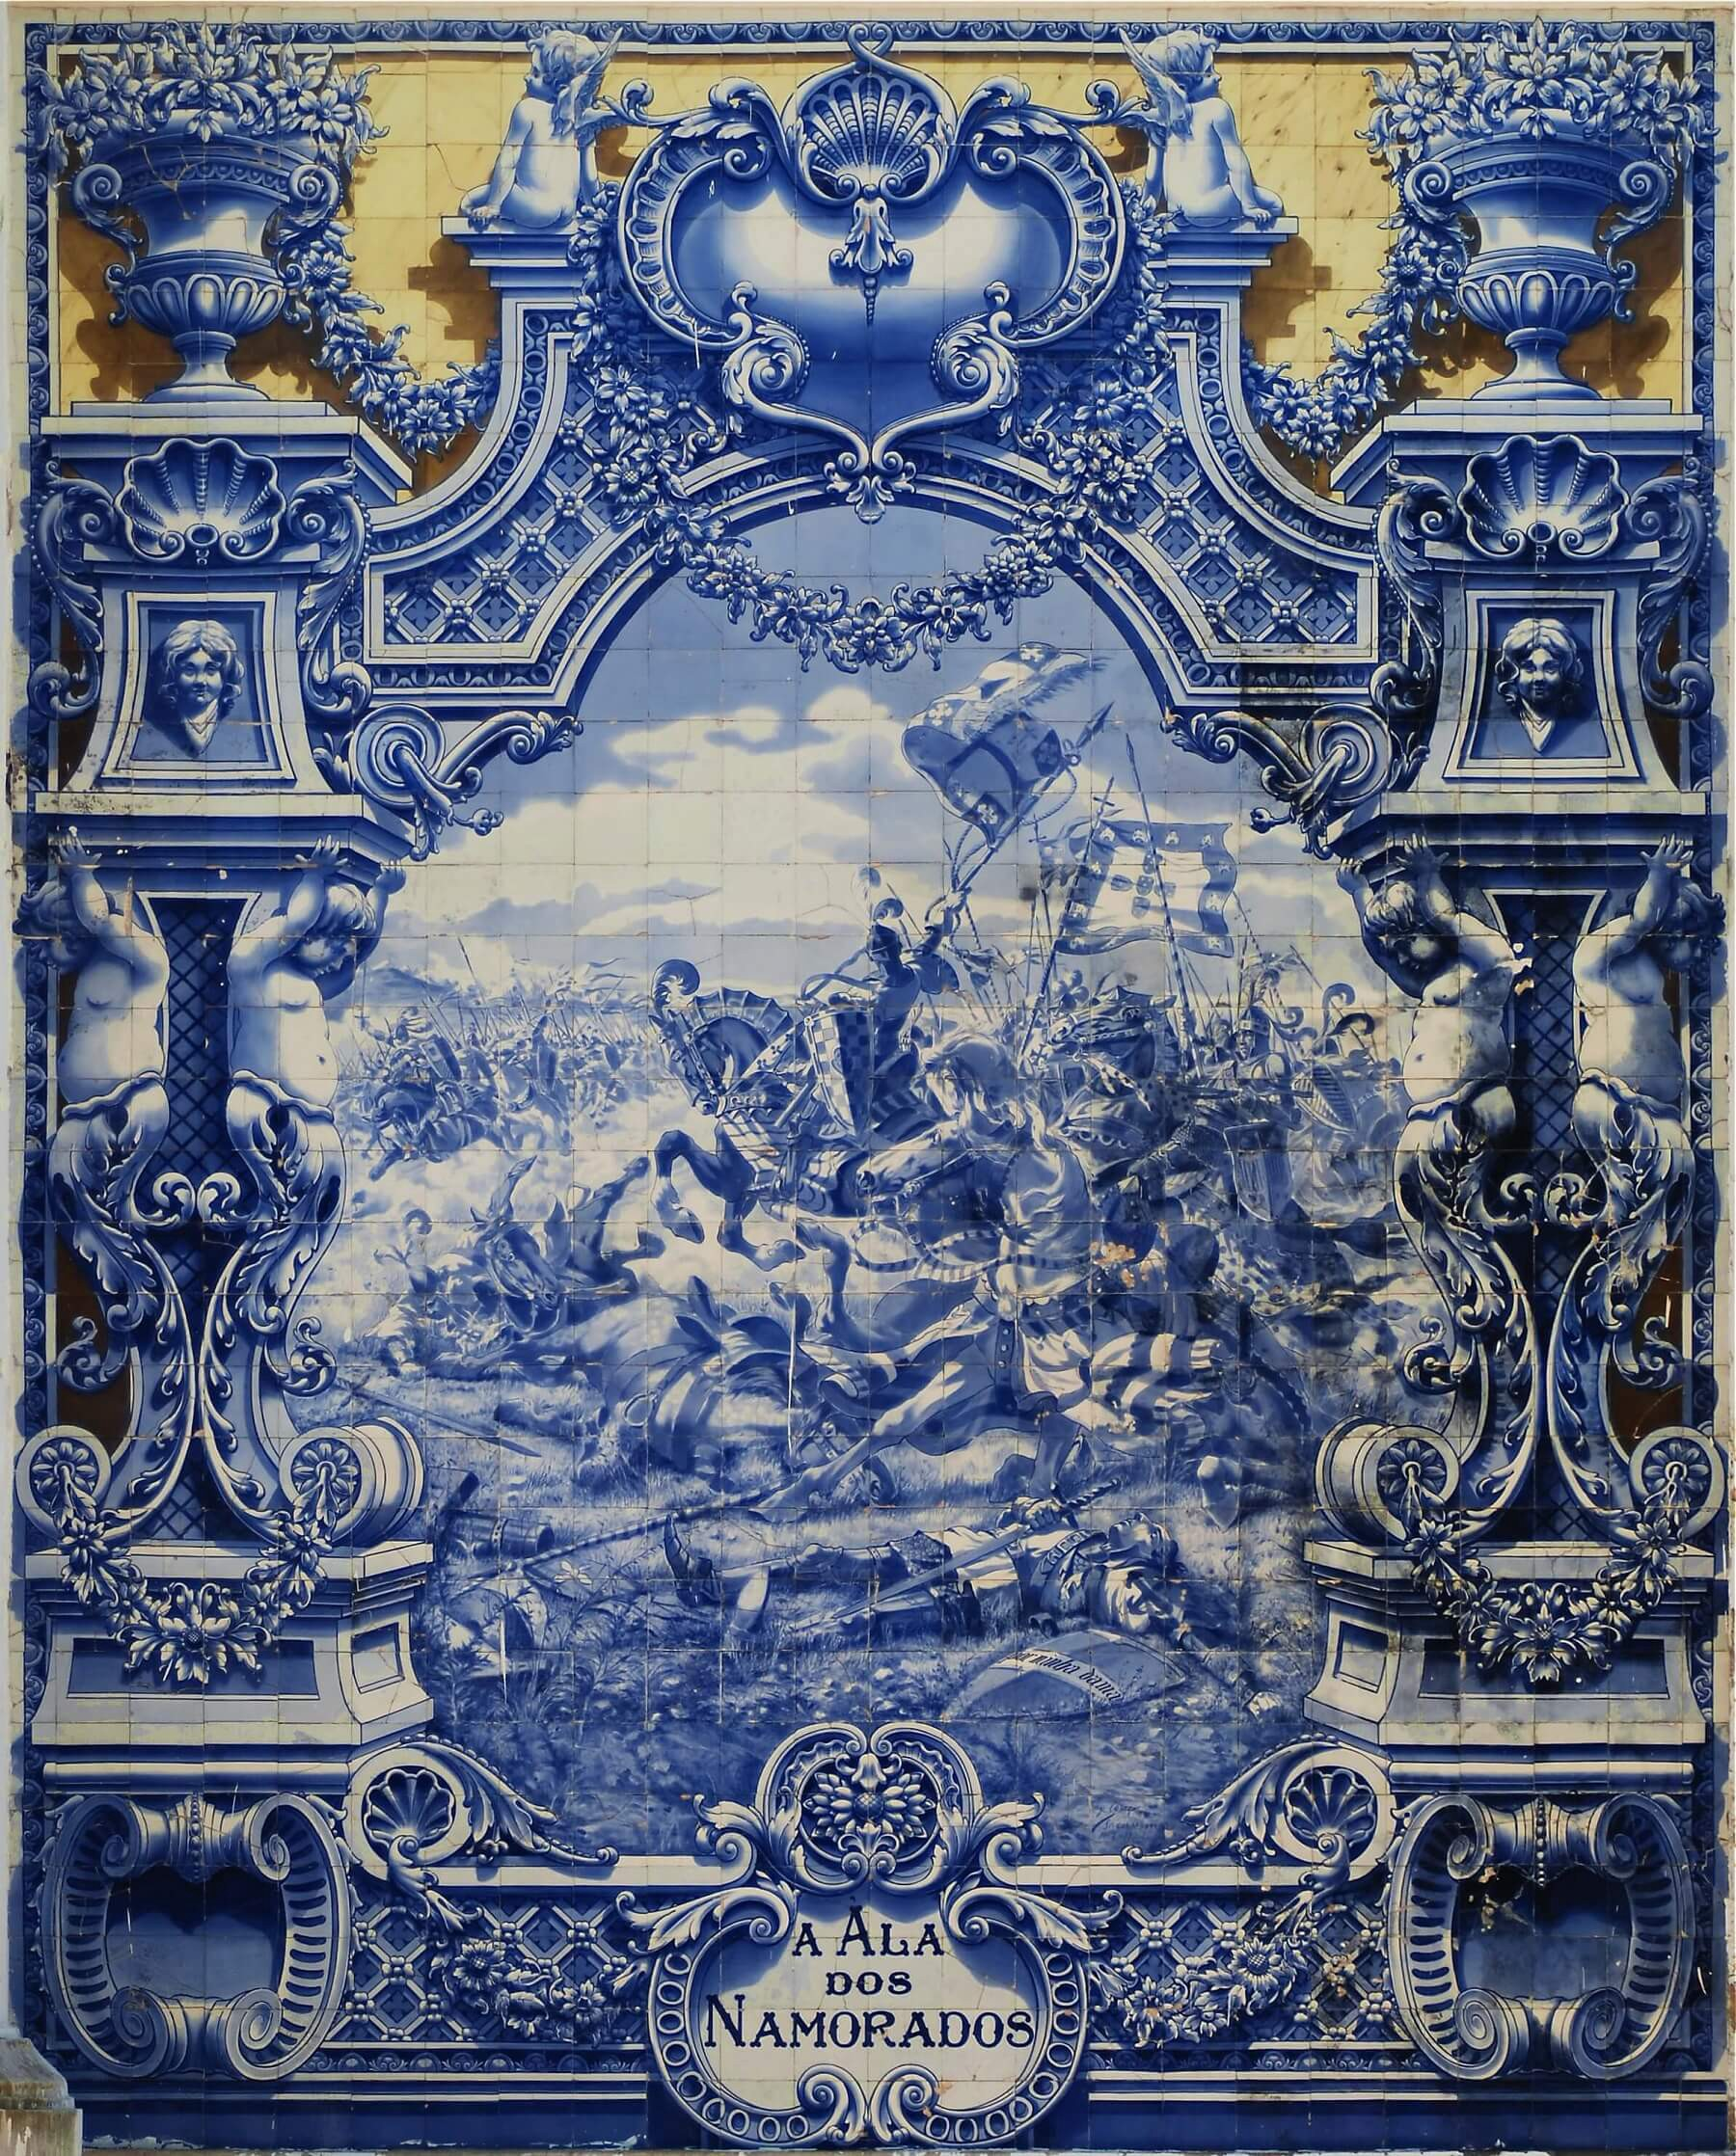 A panel of blue glazed tiles depicting a battle and a clouded sky in the background.